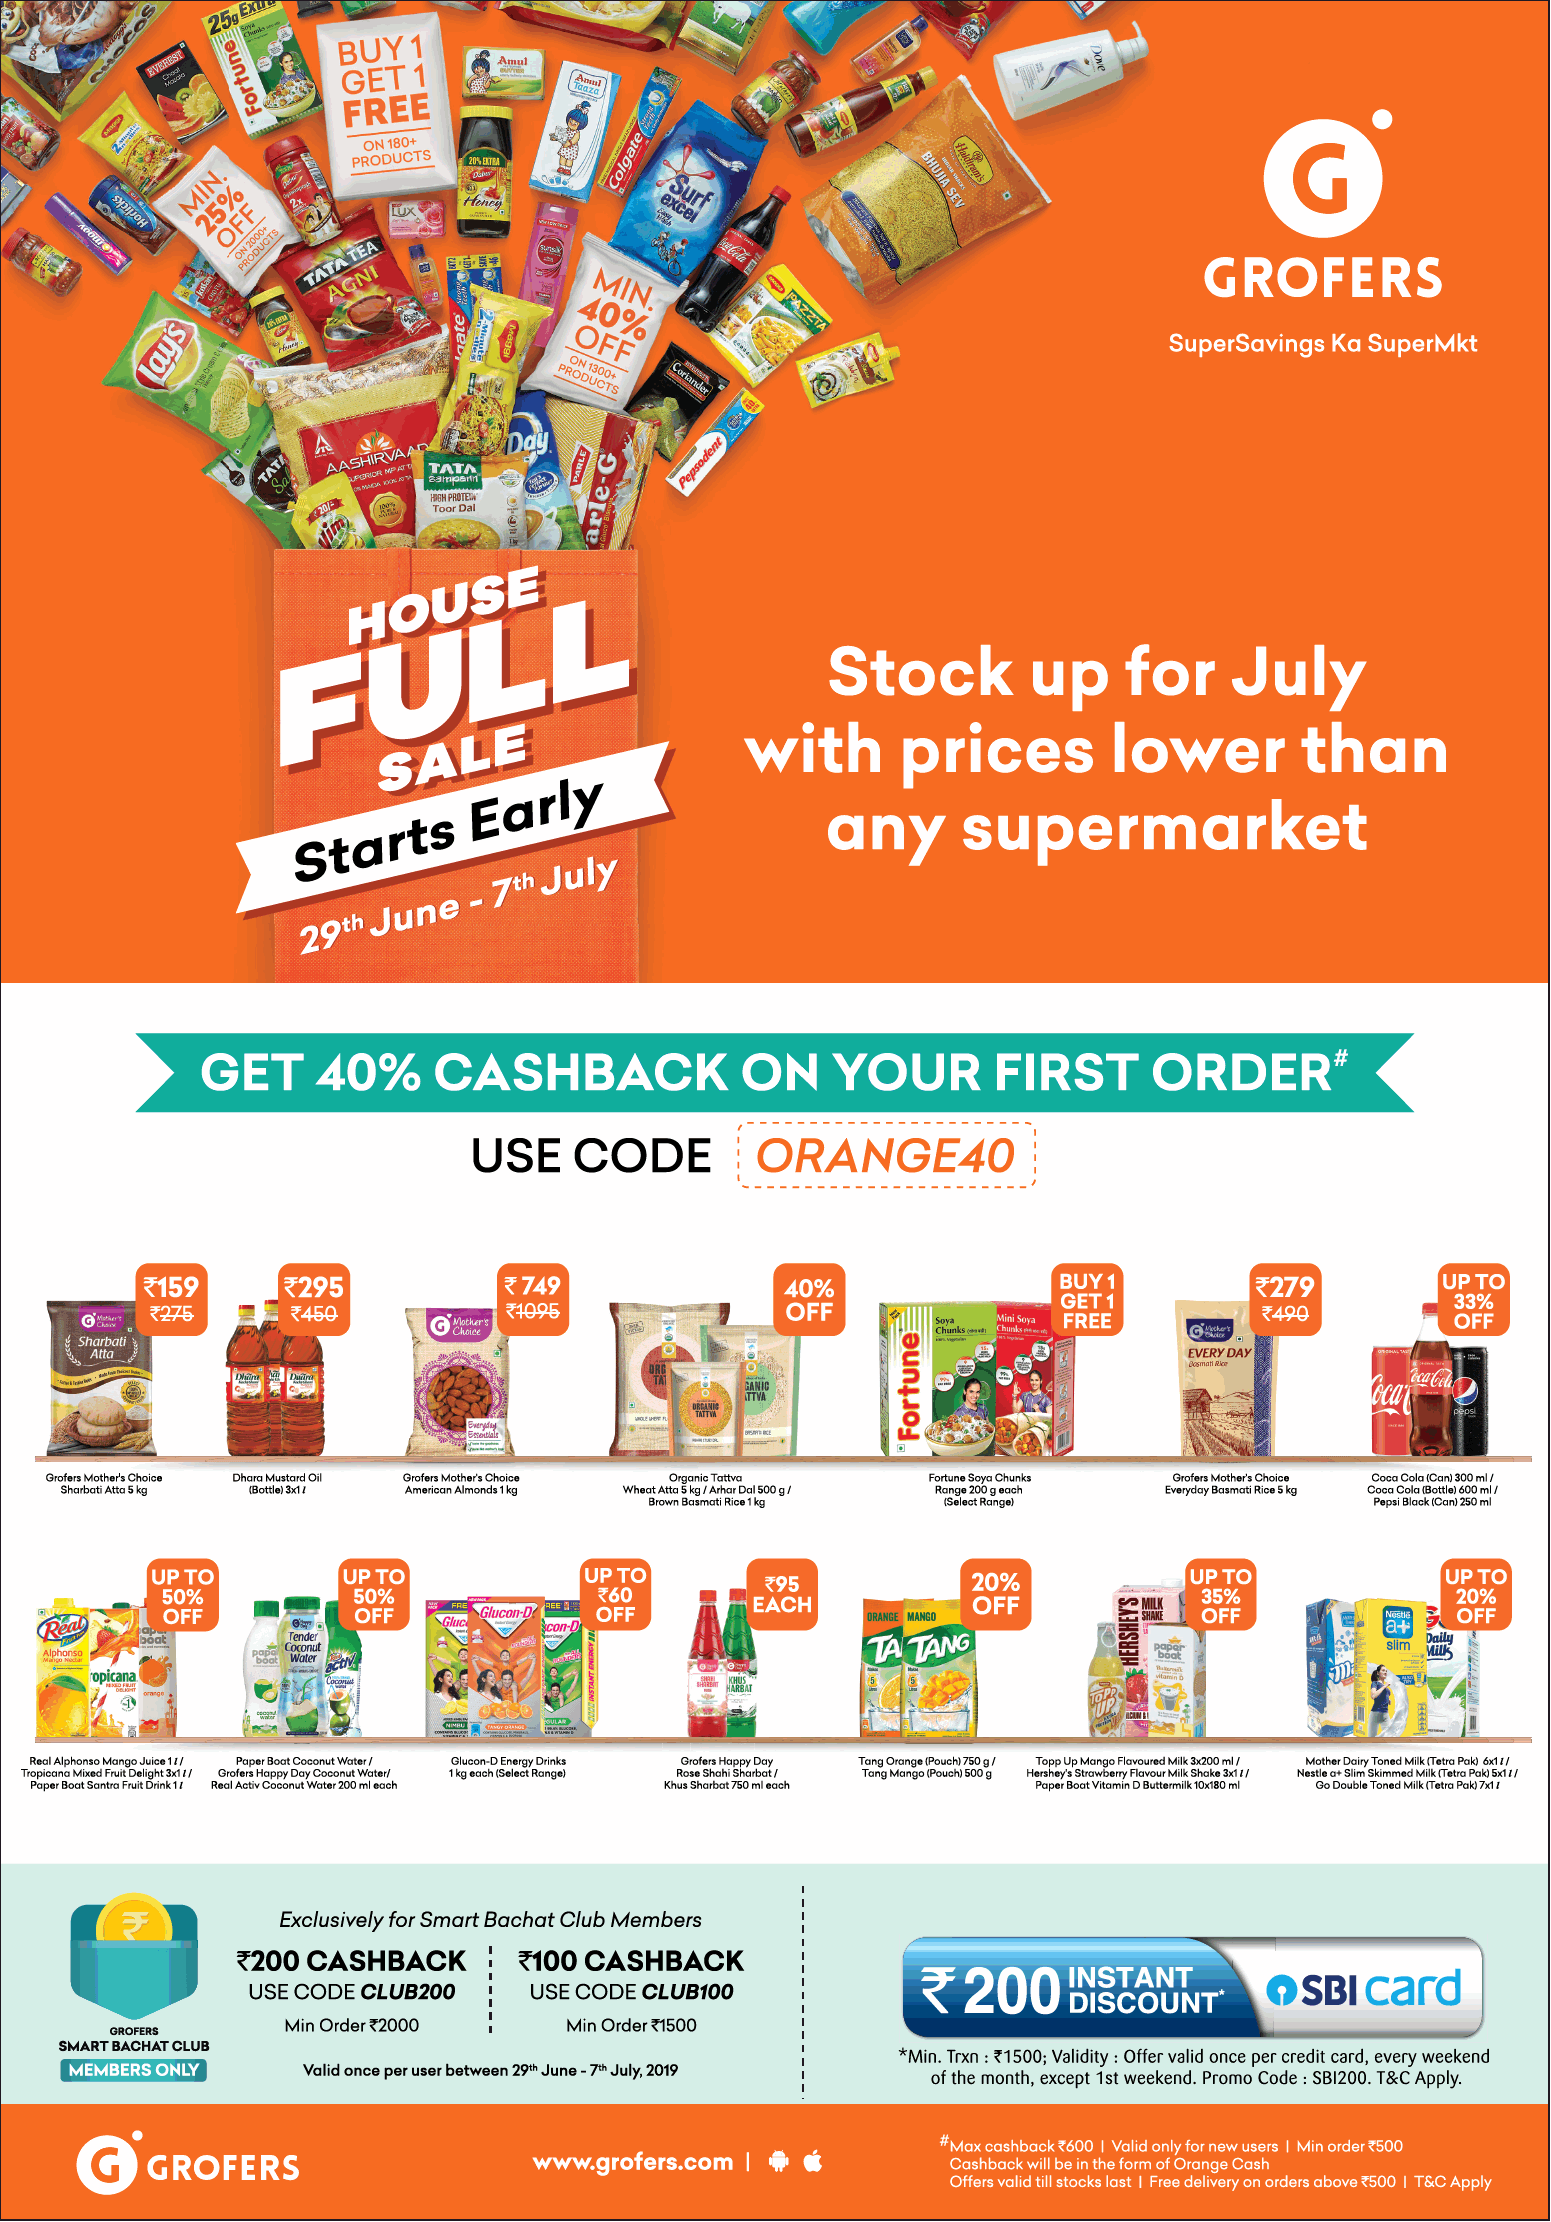 grofers-house-full-sale-starts-today-ad-times-of-india-delhi-29-06-2019.png